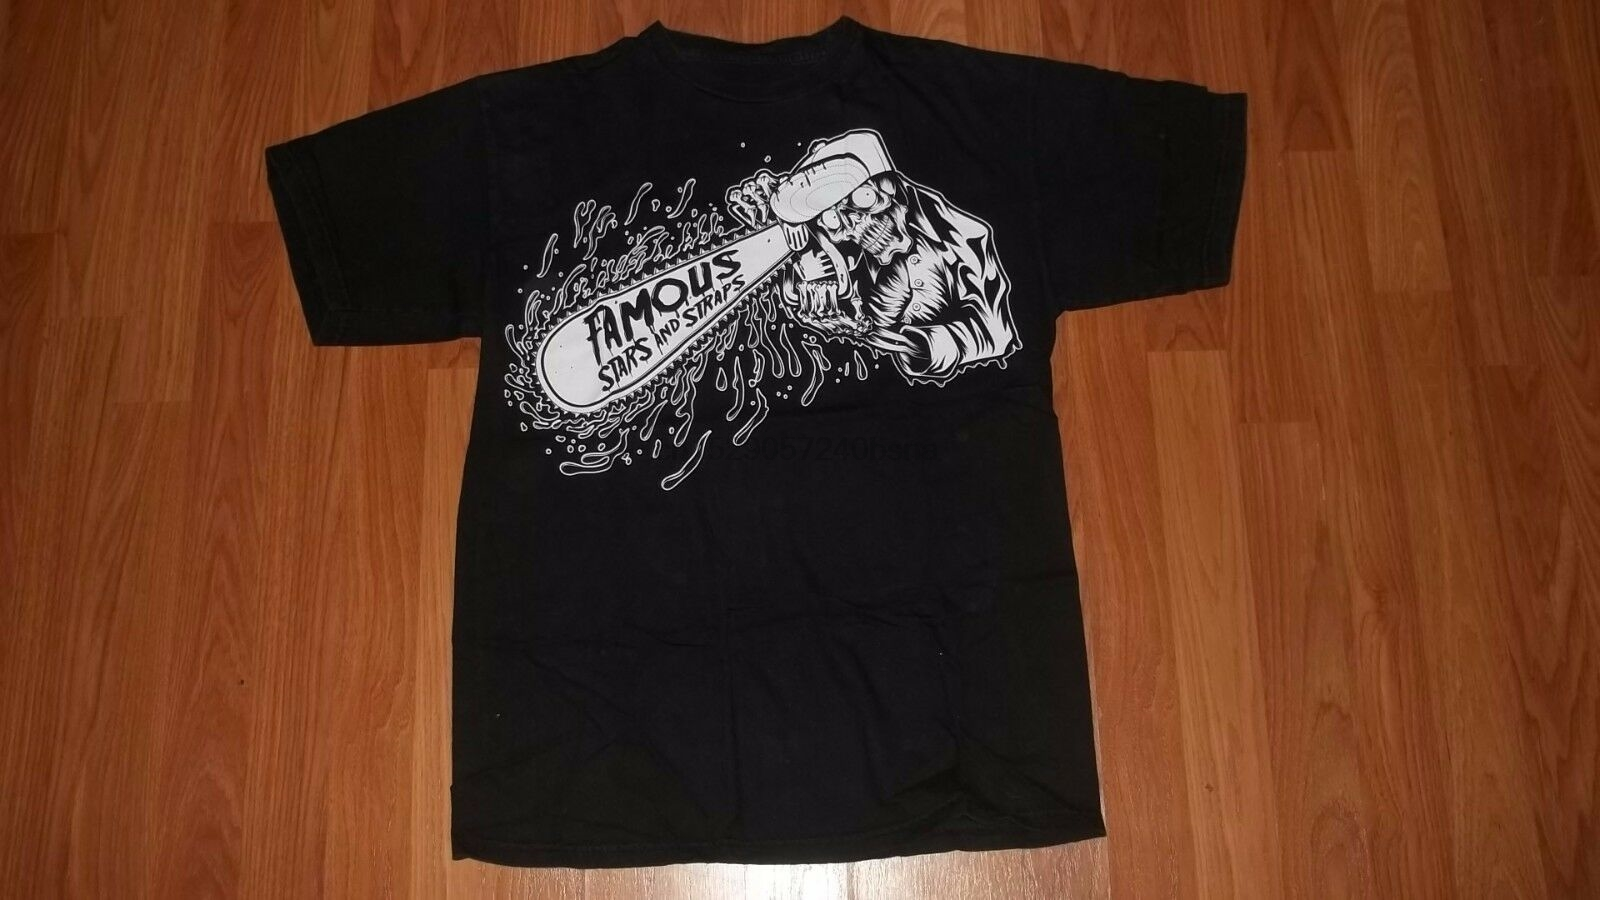 (1 SIDED) FAMOUS Stars and Straps Chainsaw SUICIDAL TENDENCIES Style T-Shirt Short Sleeve O-Neck Cotton T shirt